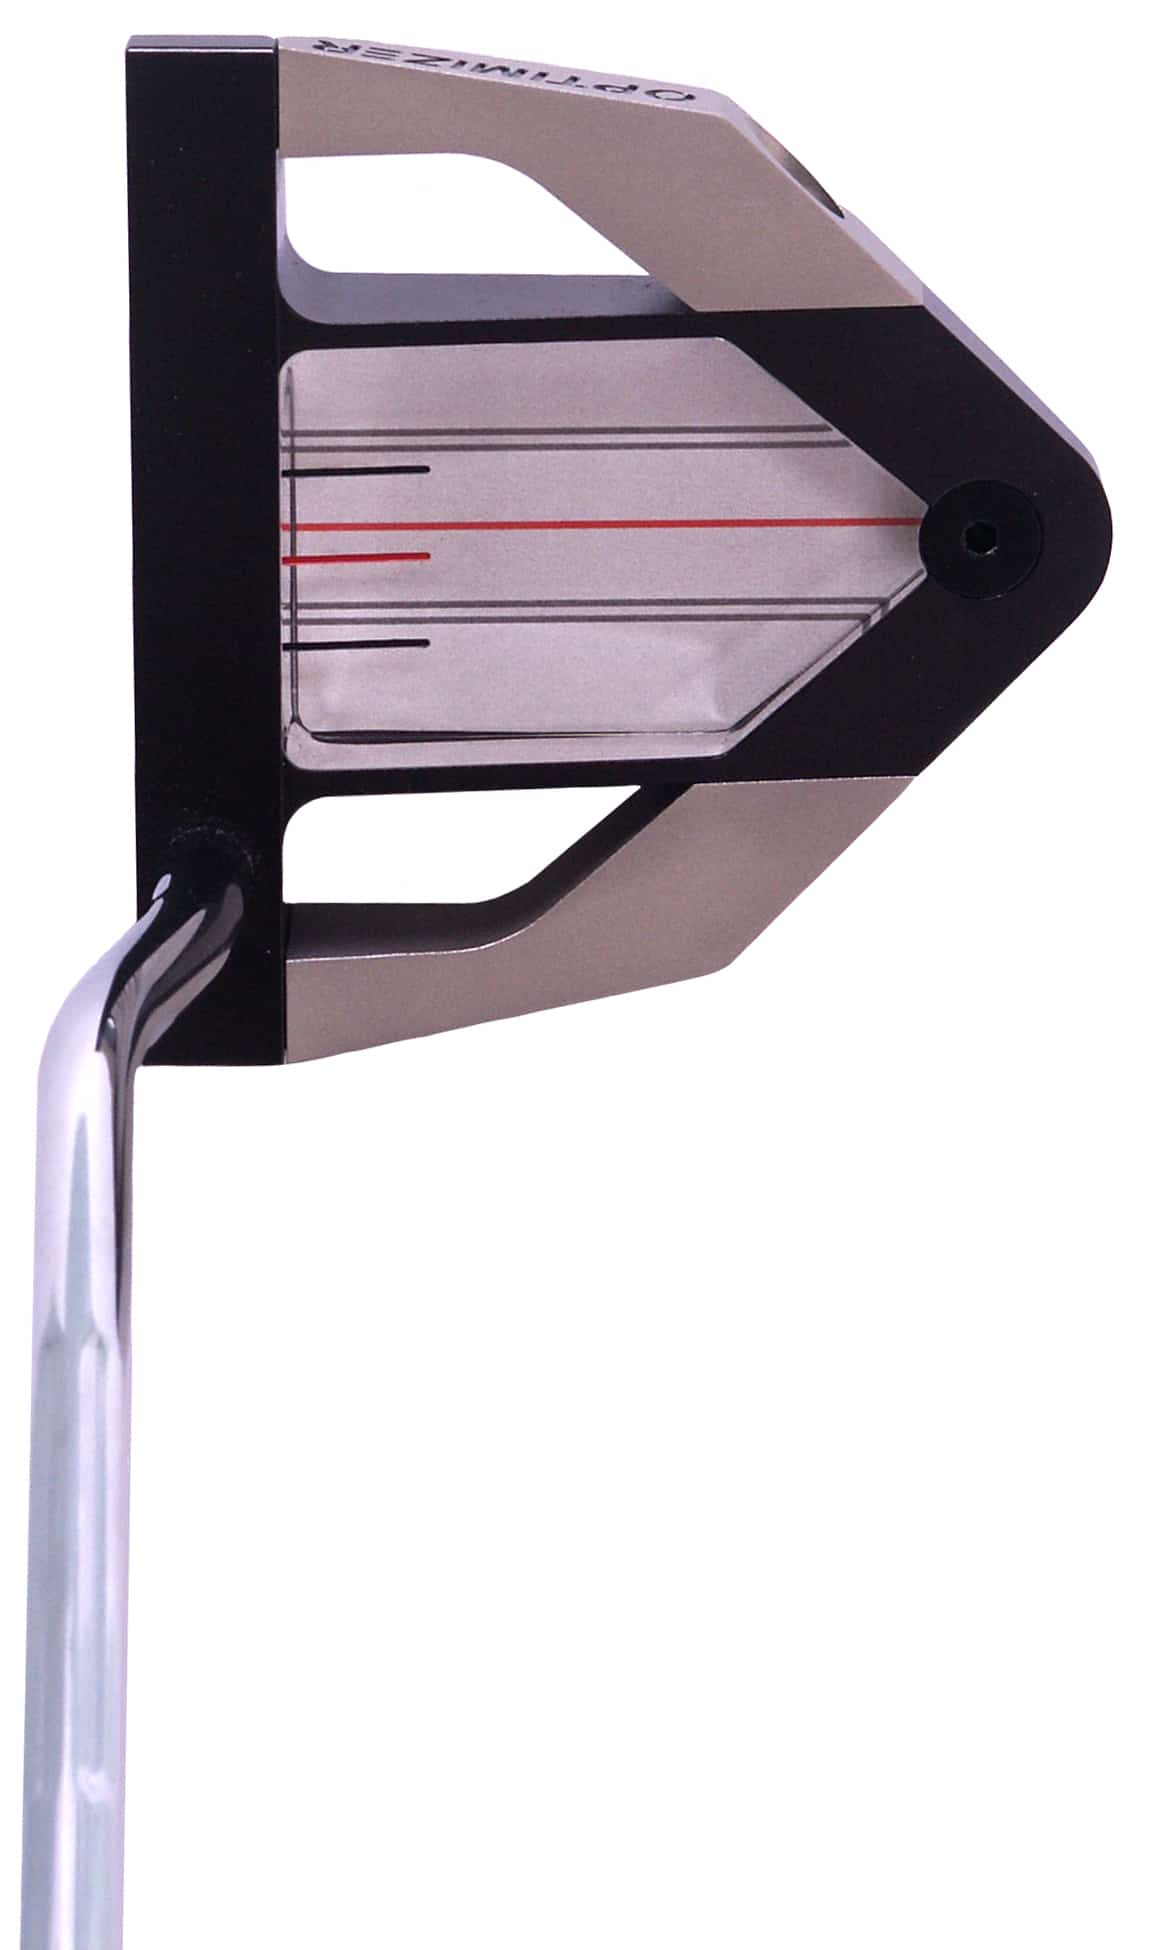 New Optimizer Putter - 3-D prism Technology - Hole more putts